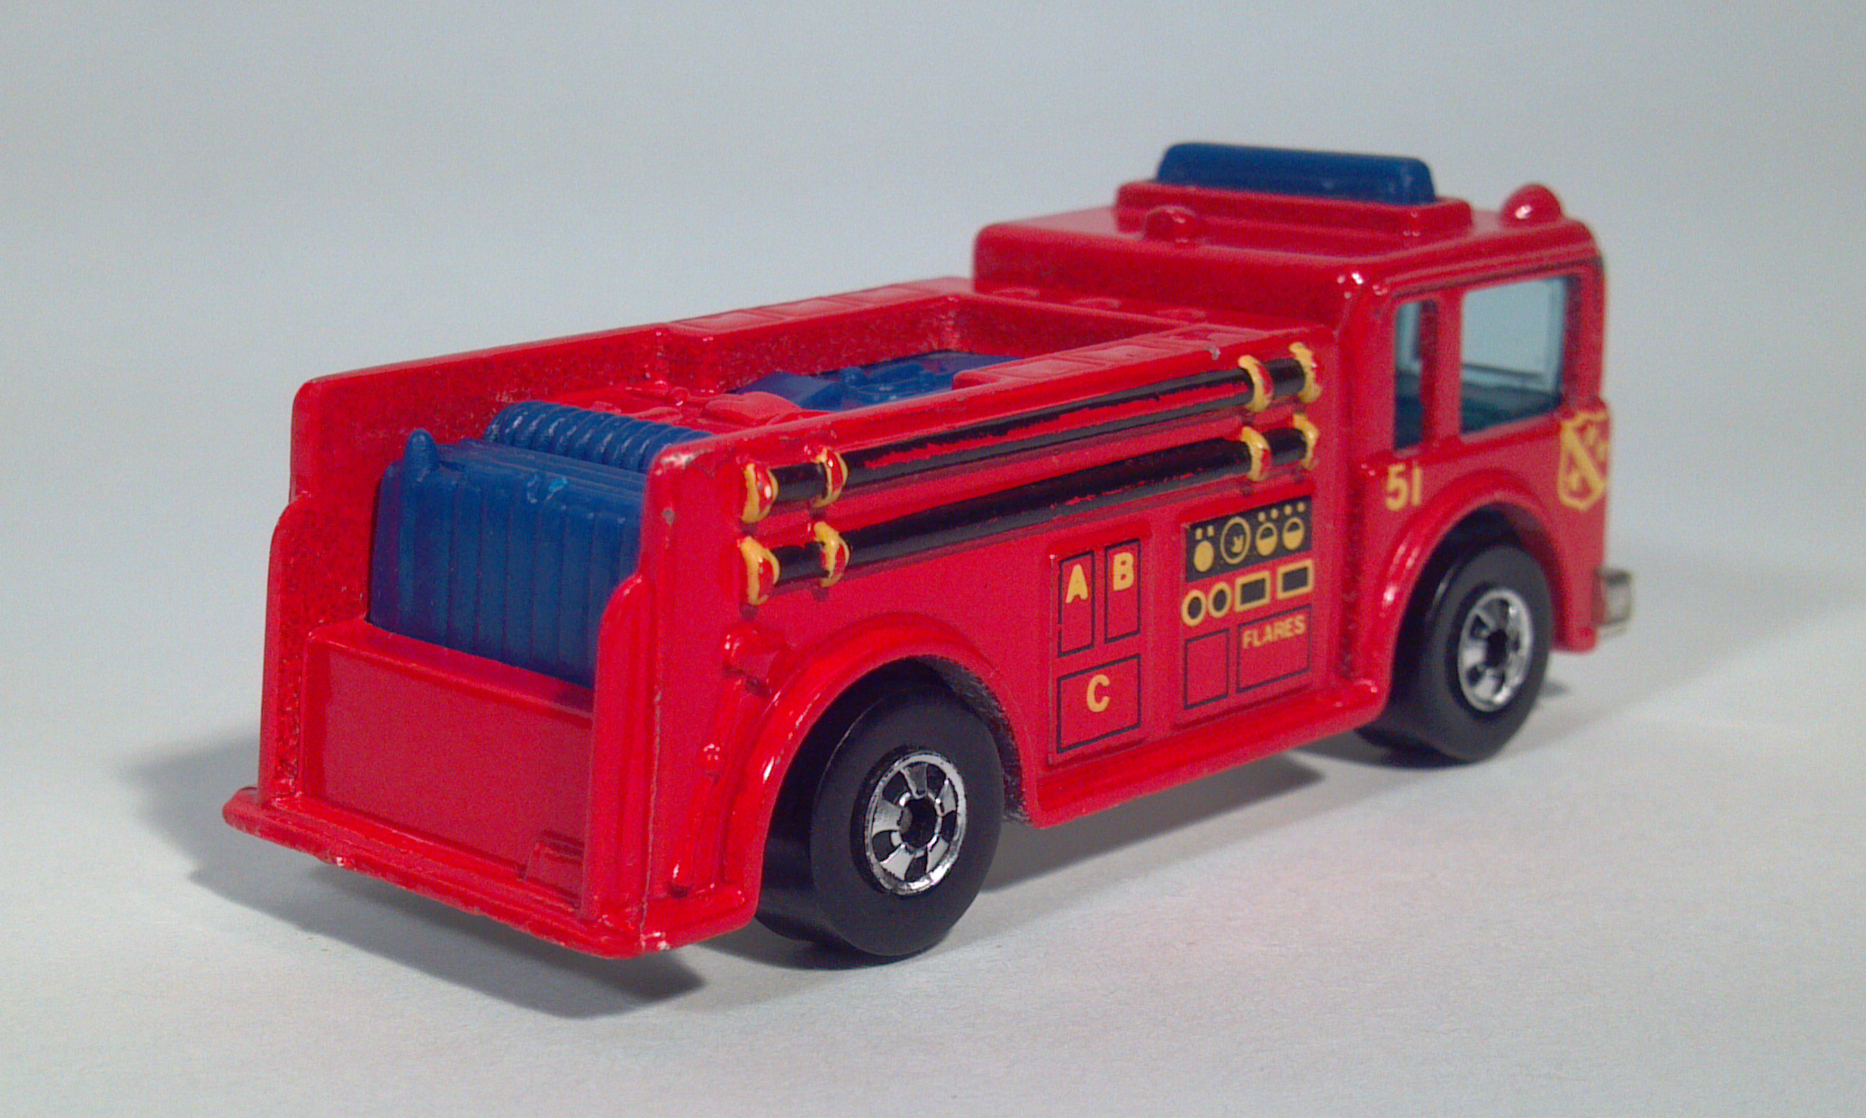 Diecast Toy Fire Trucks Missing 1976 Hot Wheels Truck Yellow